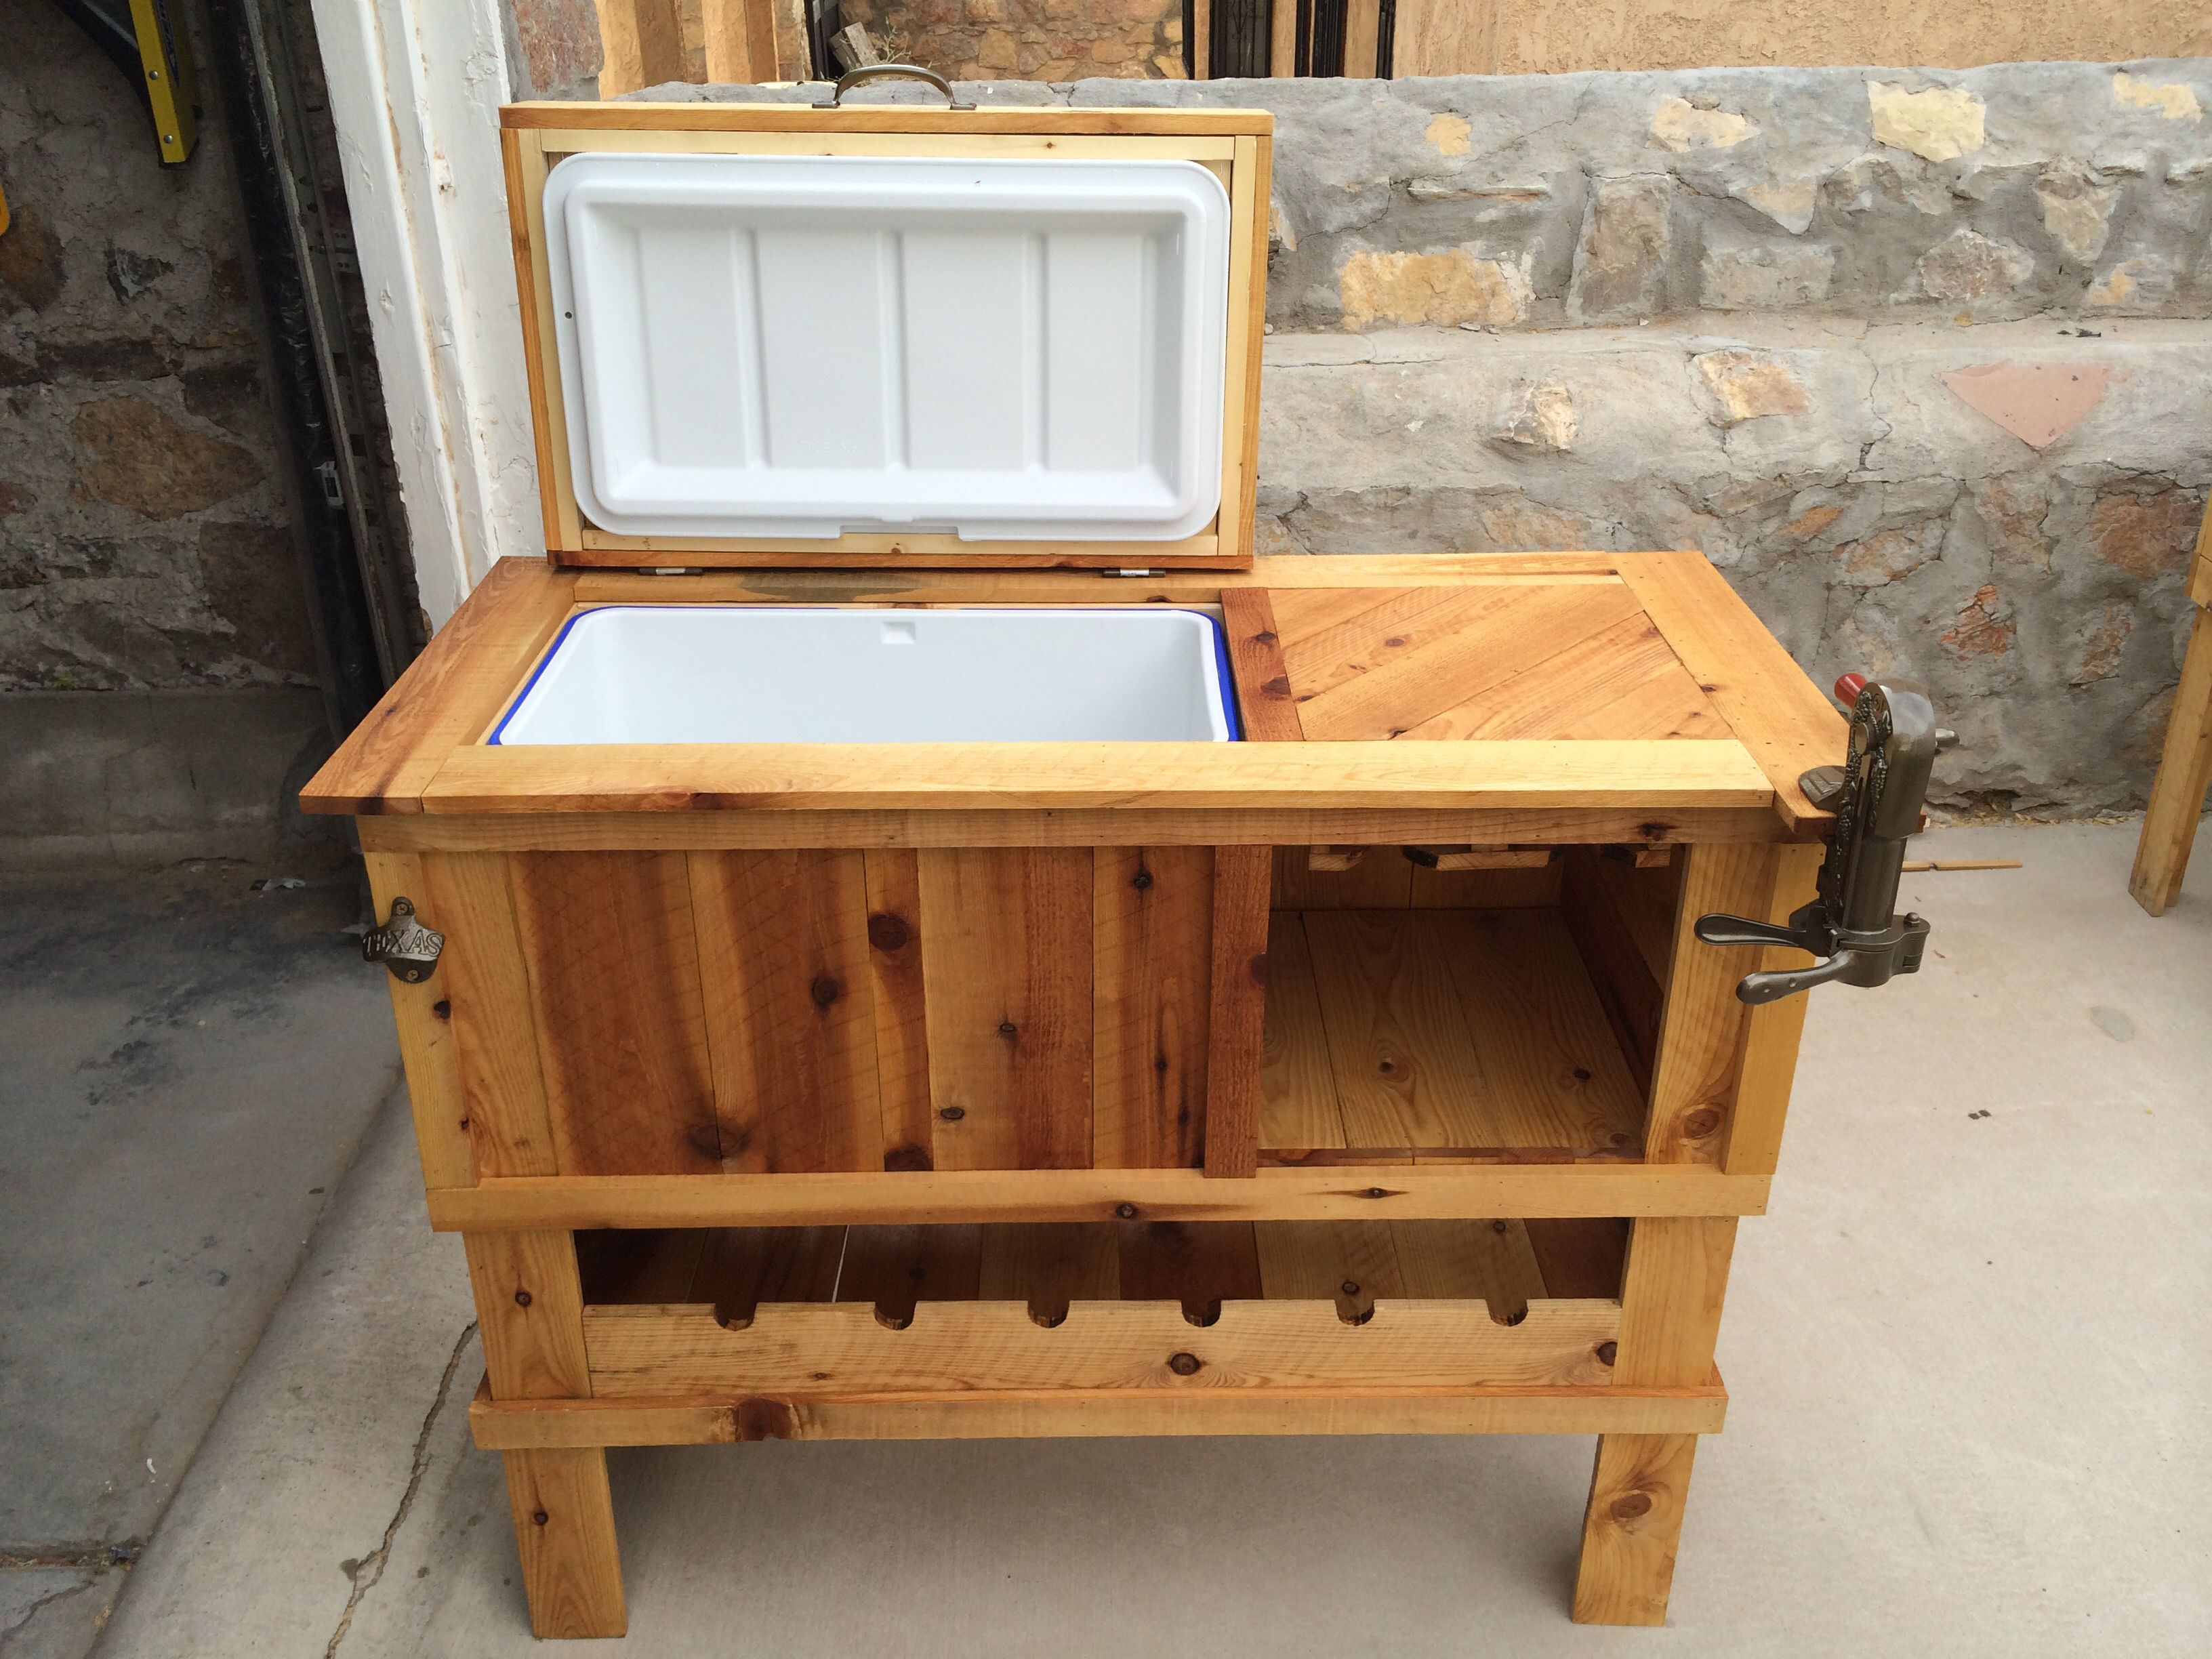 re country furniture indoor products patio brown rustic outdoor cooler cart shop woodworx cabinet